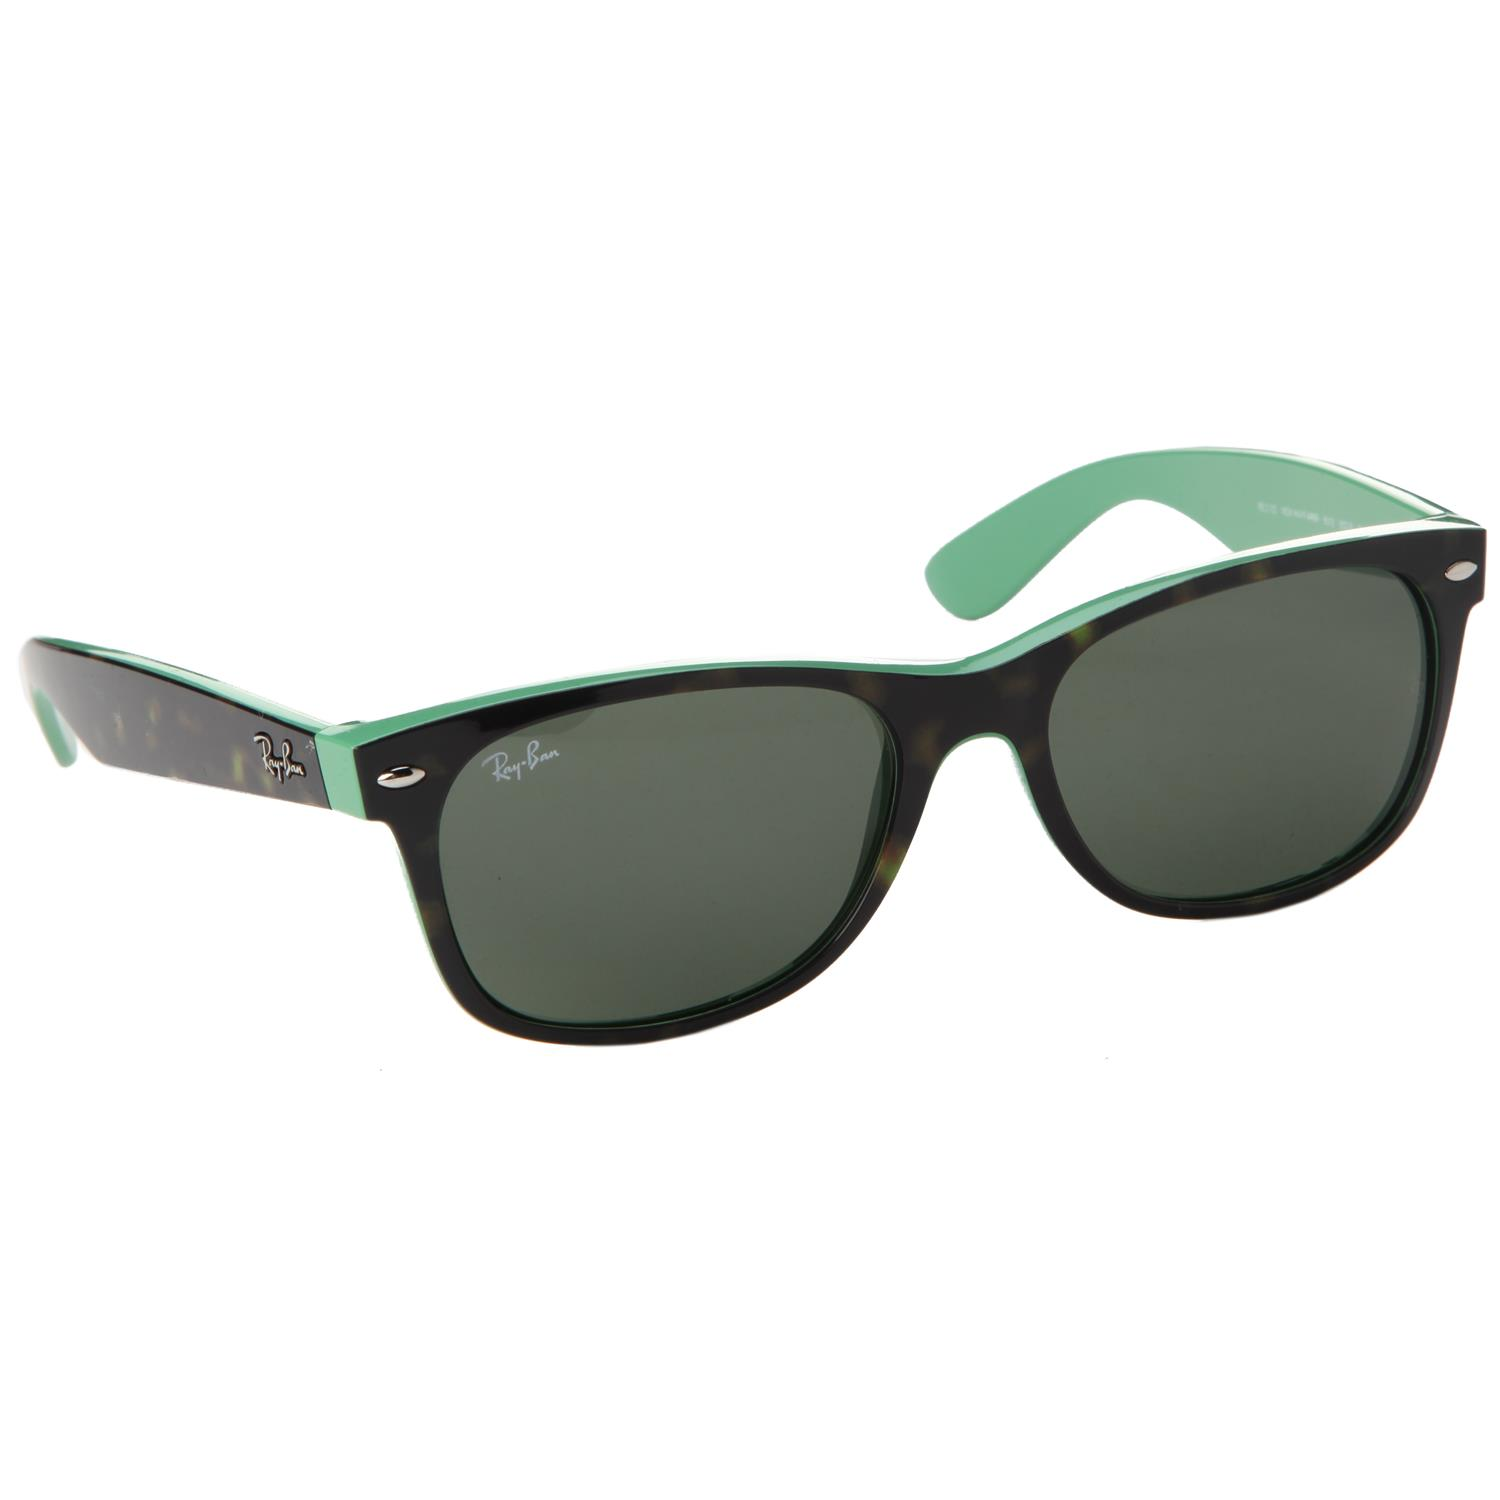 ray ban rb 2132 new wayfarer 55 sunglasses evo. Black Bedroom Furniture Sets. Home Design Ideas